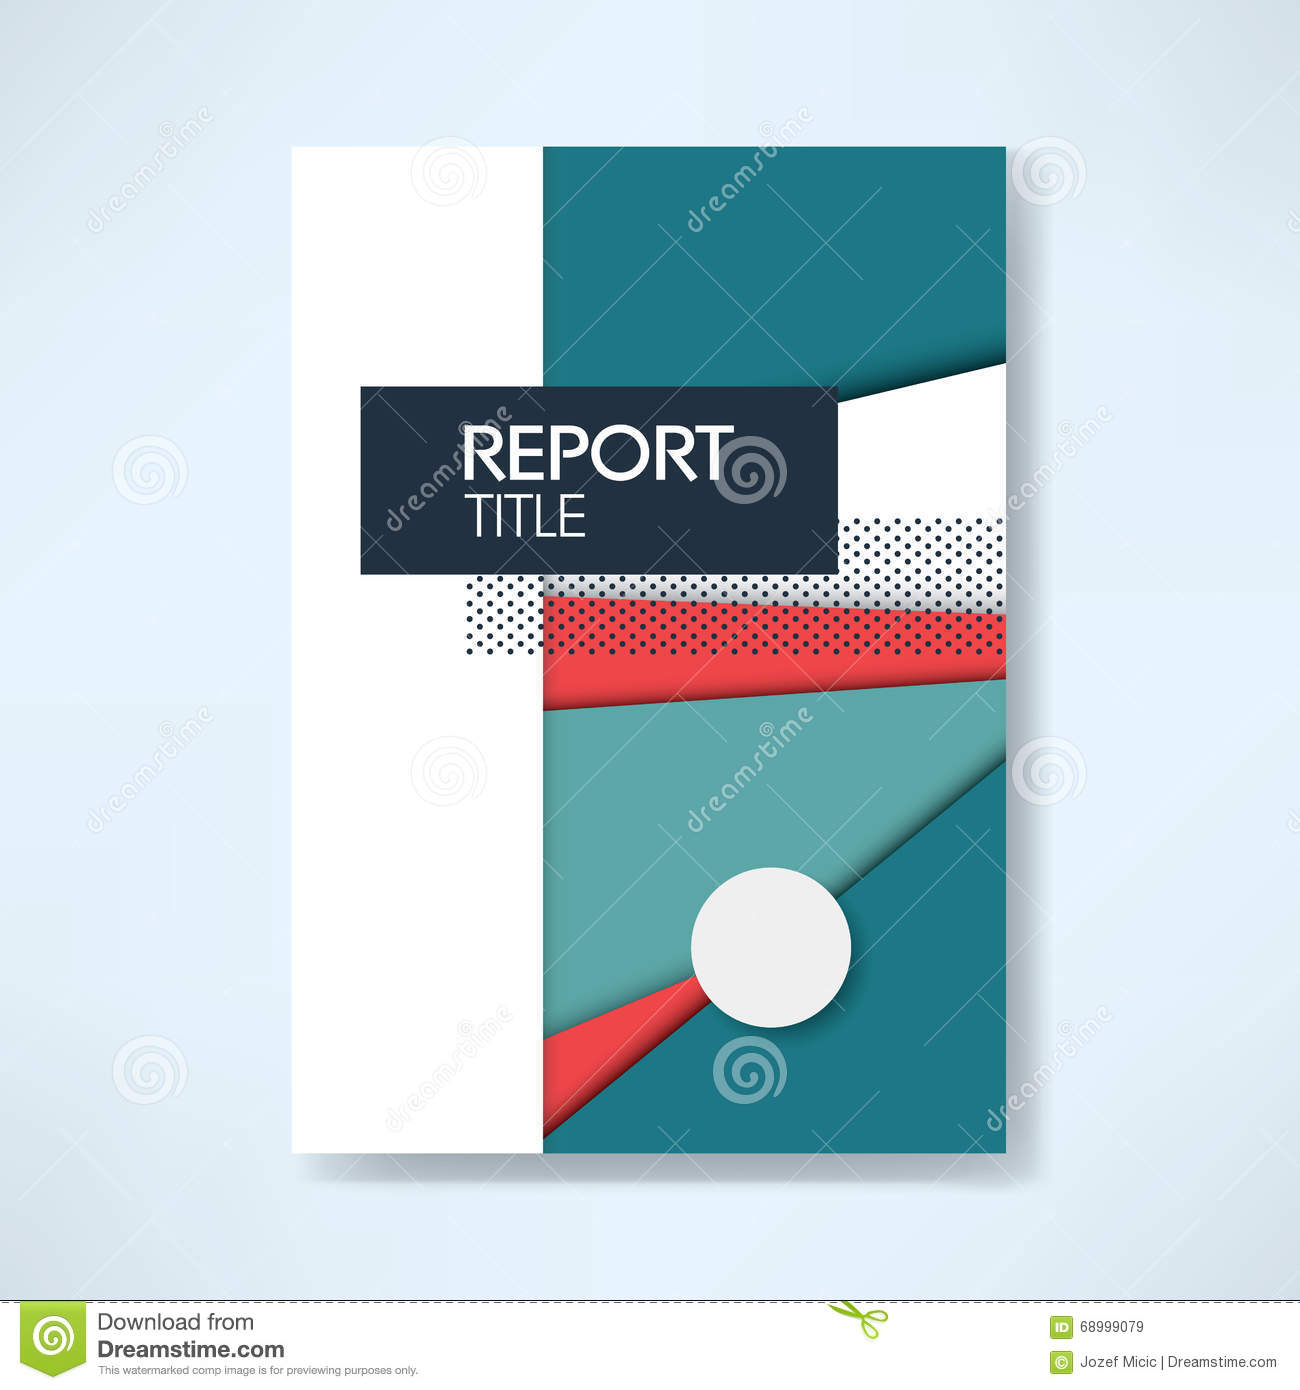 annual report cover template on material design style vector report cover template in modern material design style geometric shapes royalty stock images